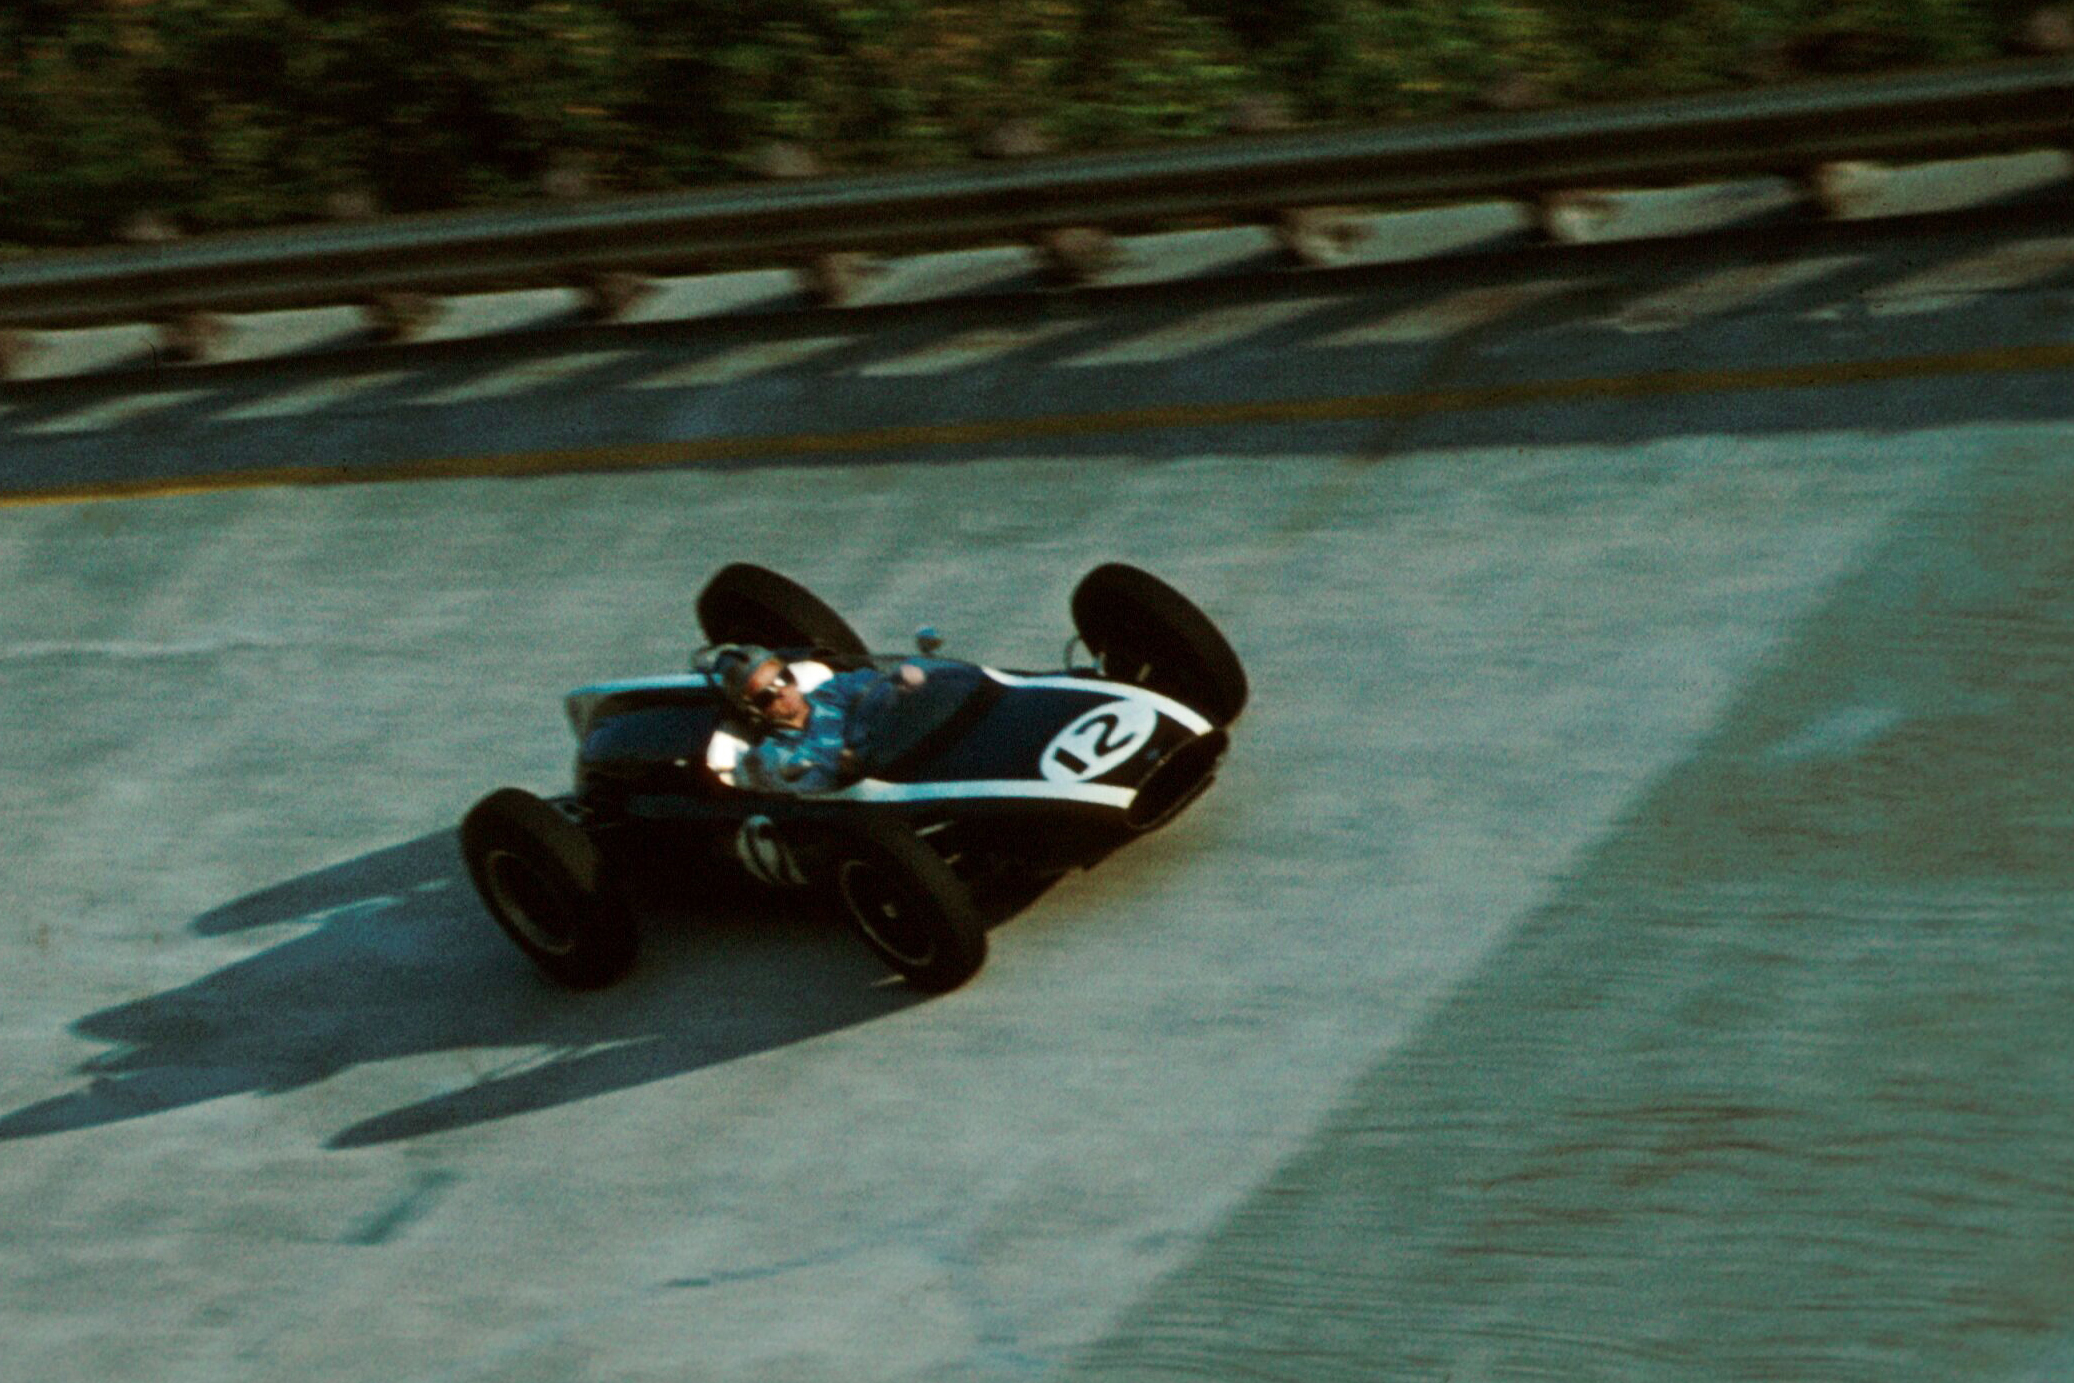 Bruce Mclaren drives his Cooper T55 around the banking.